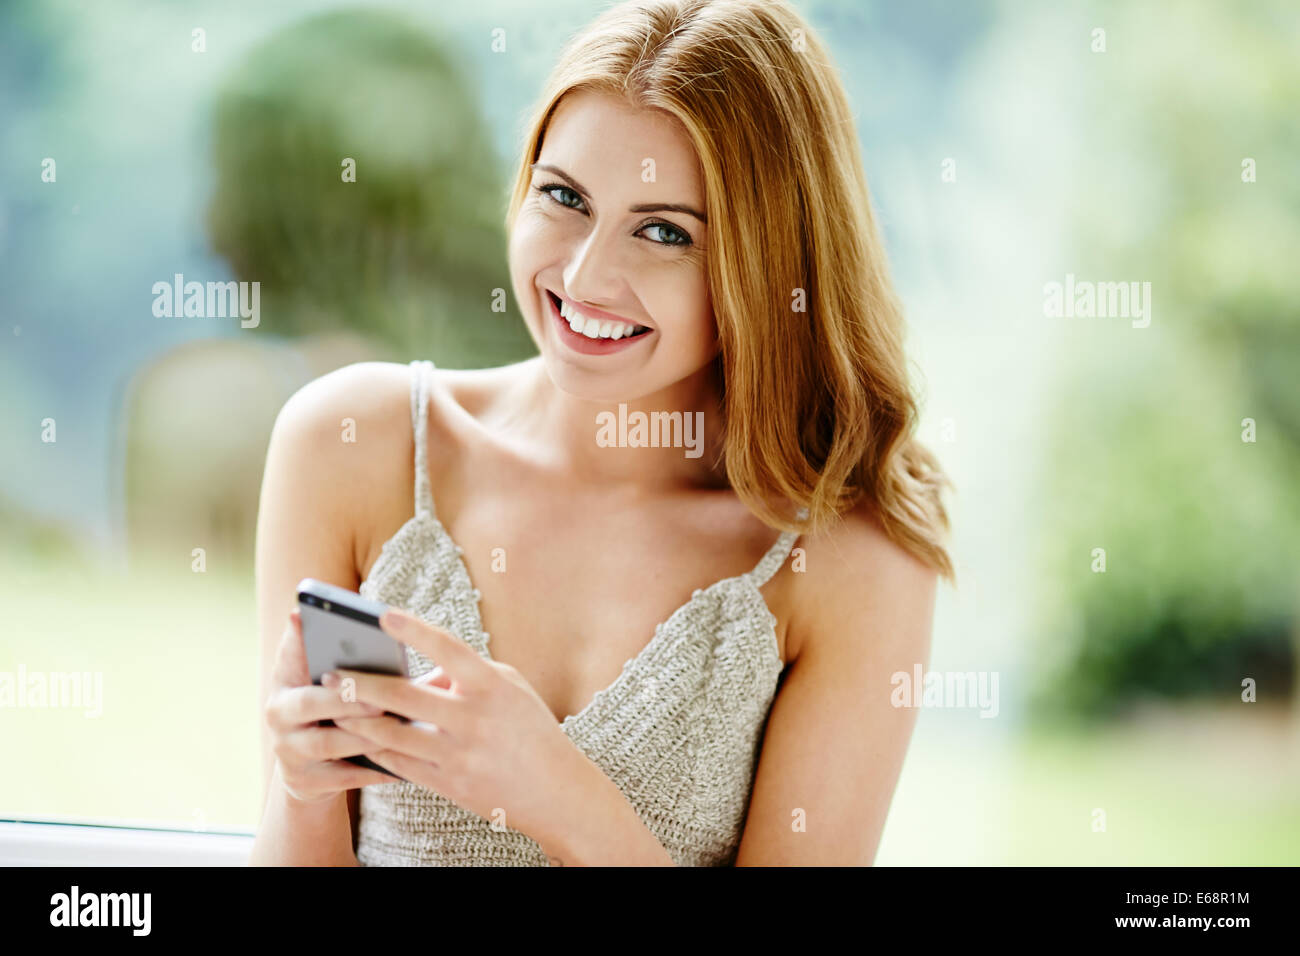 Pretty girl using mobile phone - Stock Image